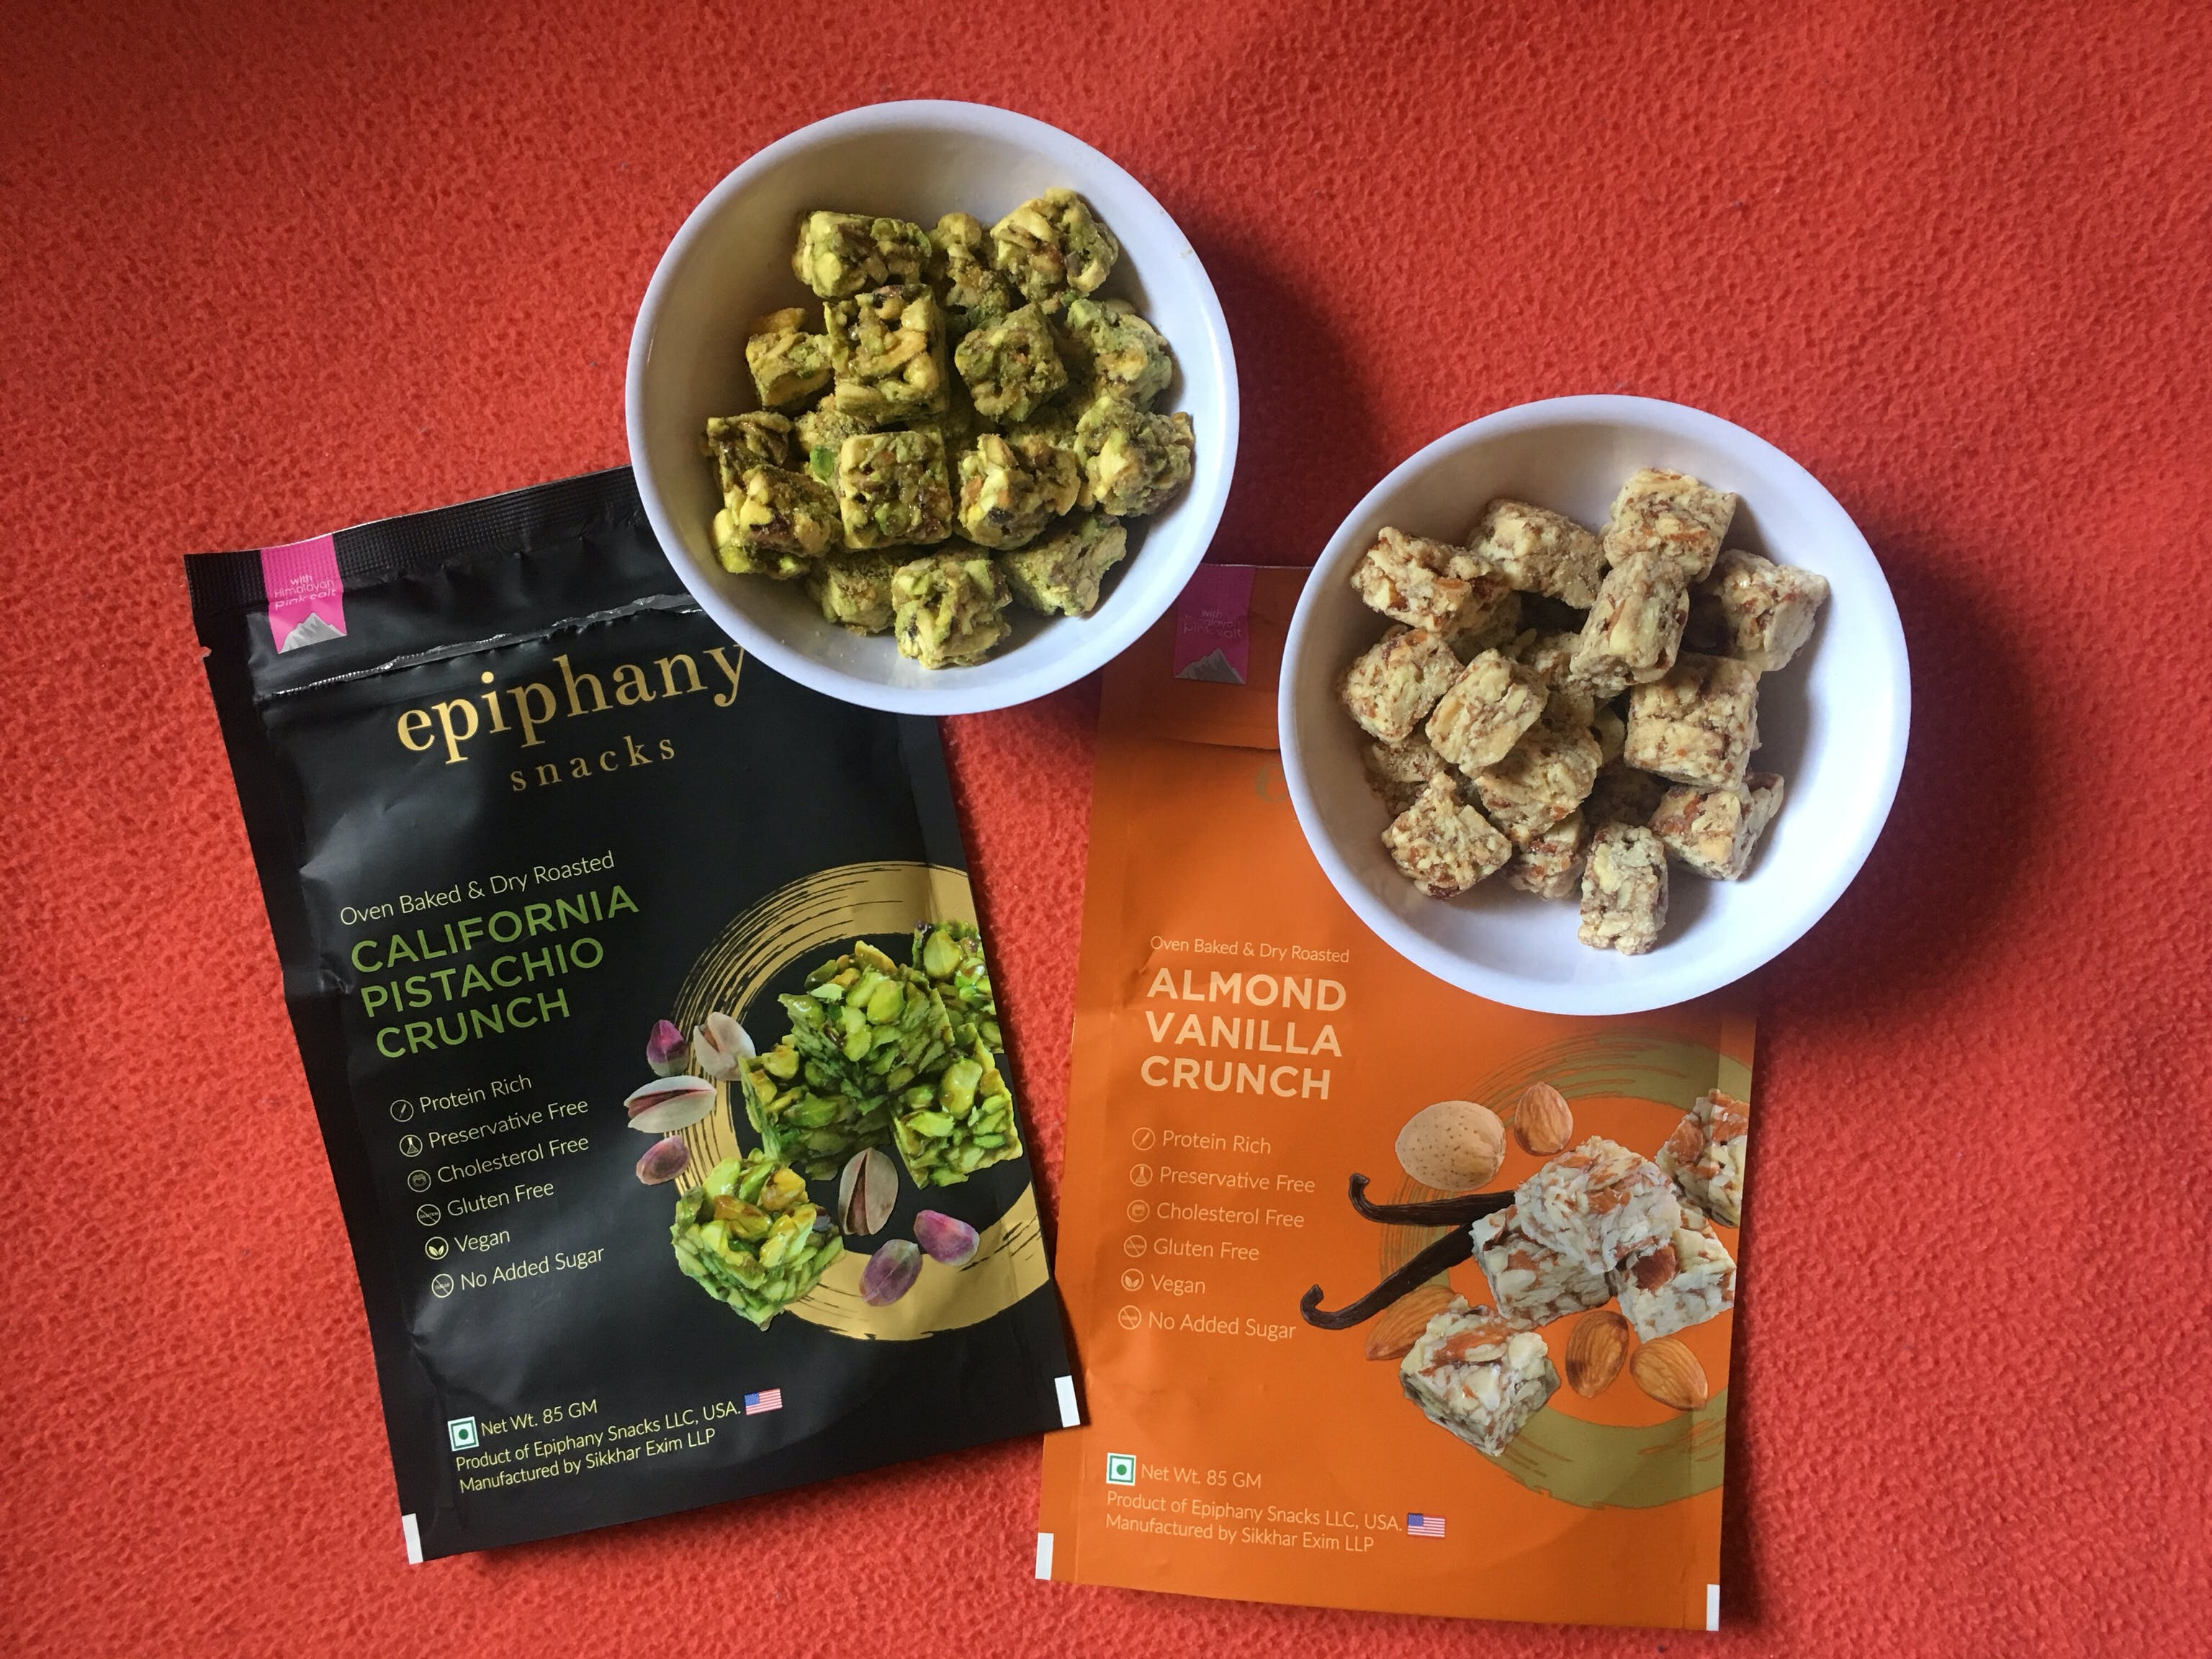 Check Out These Oh So Crunchy & Delicious Snacks!